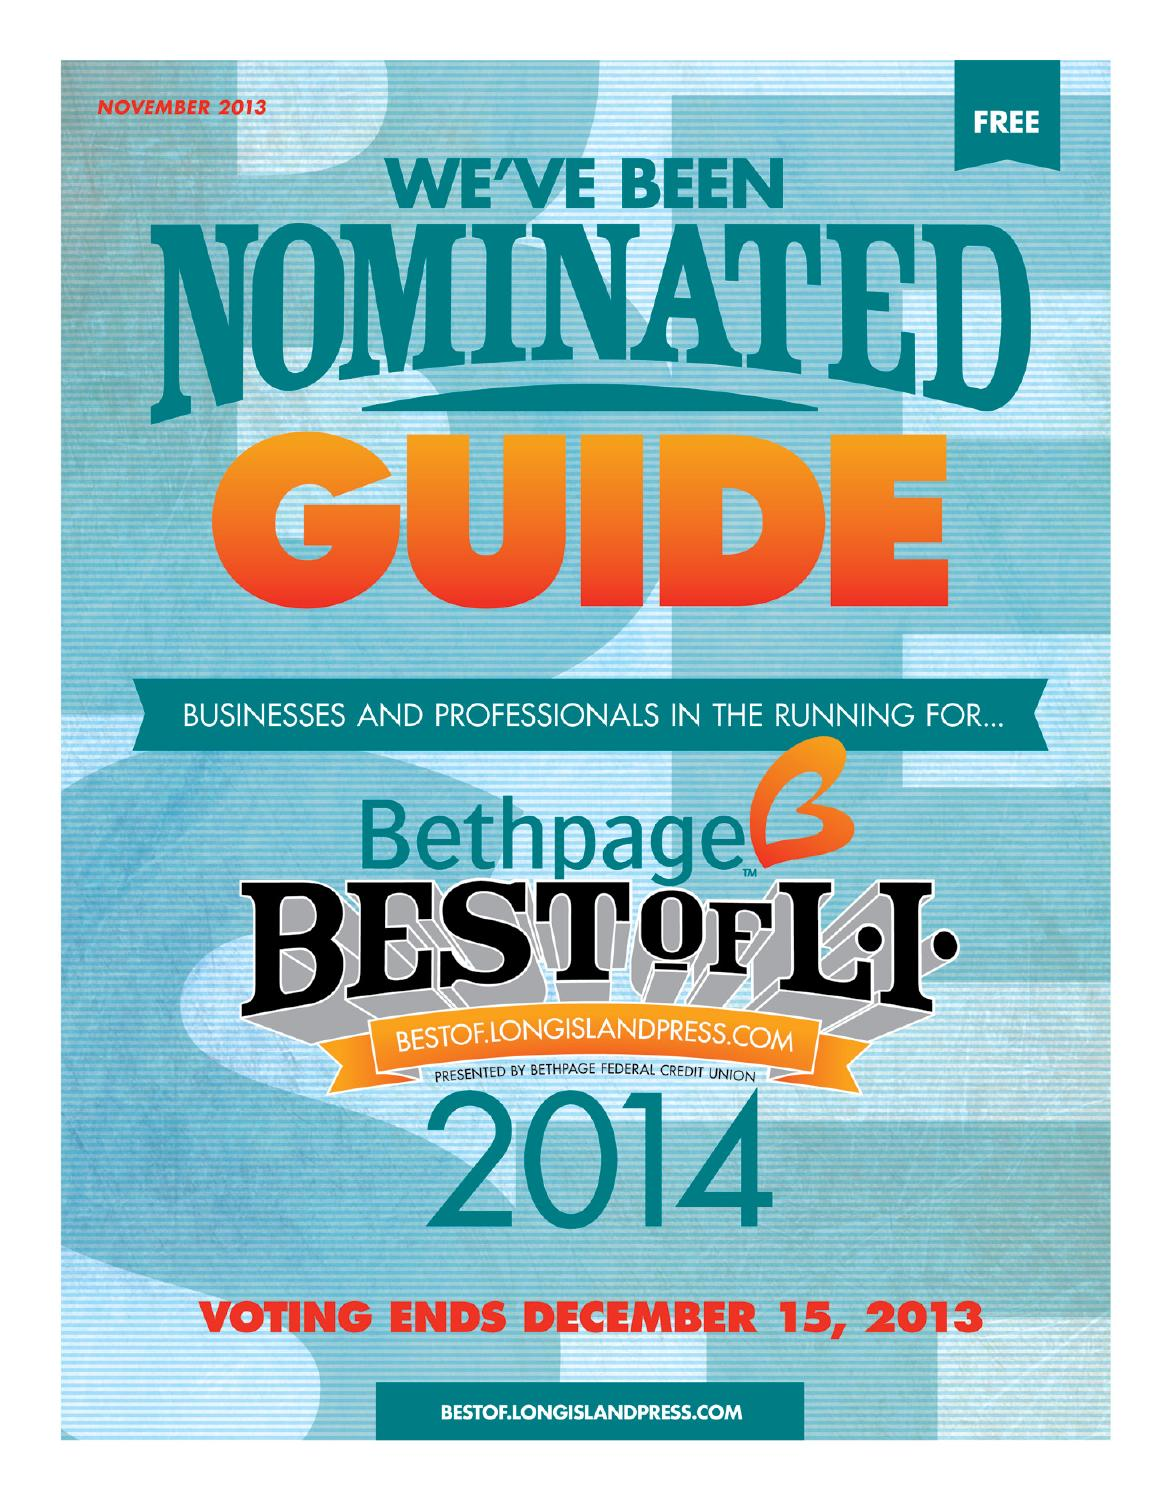 Bethpage Best of L.I. 2014 \